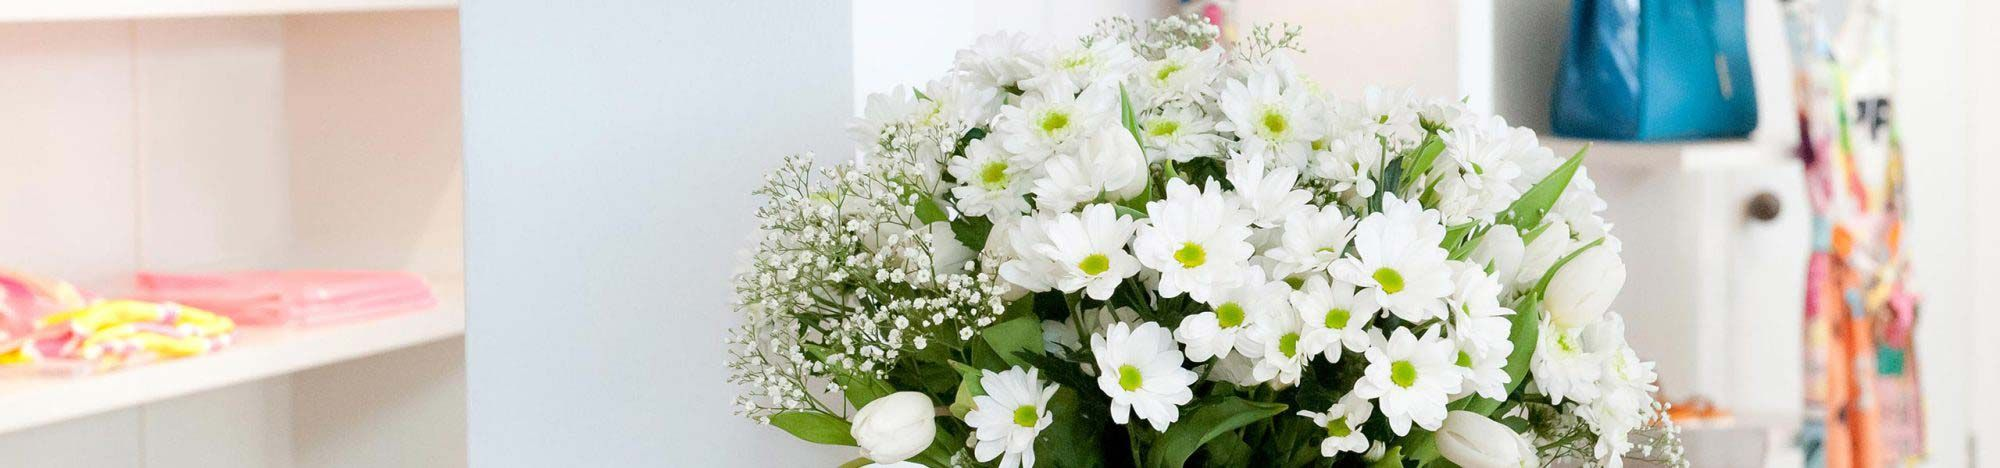 Blumen in der Boutique en vogue in Recklinghausen